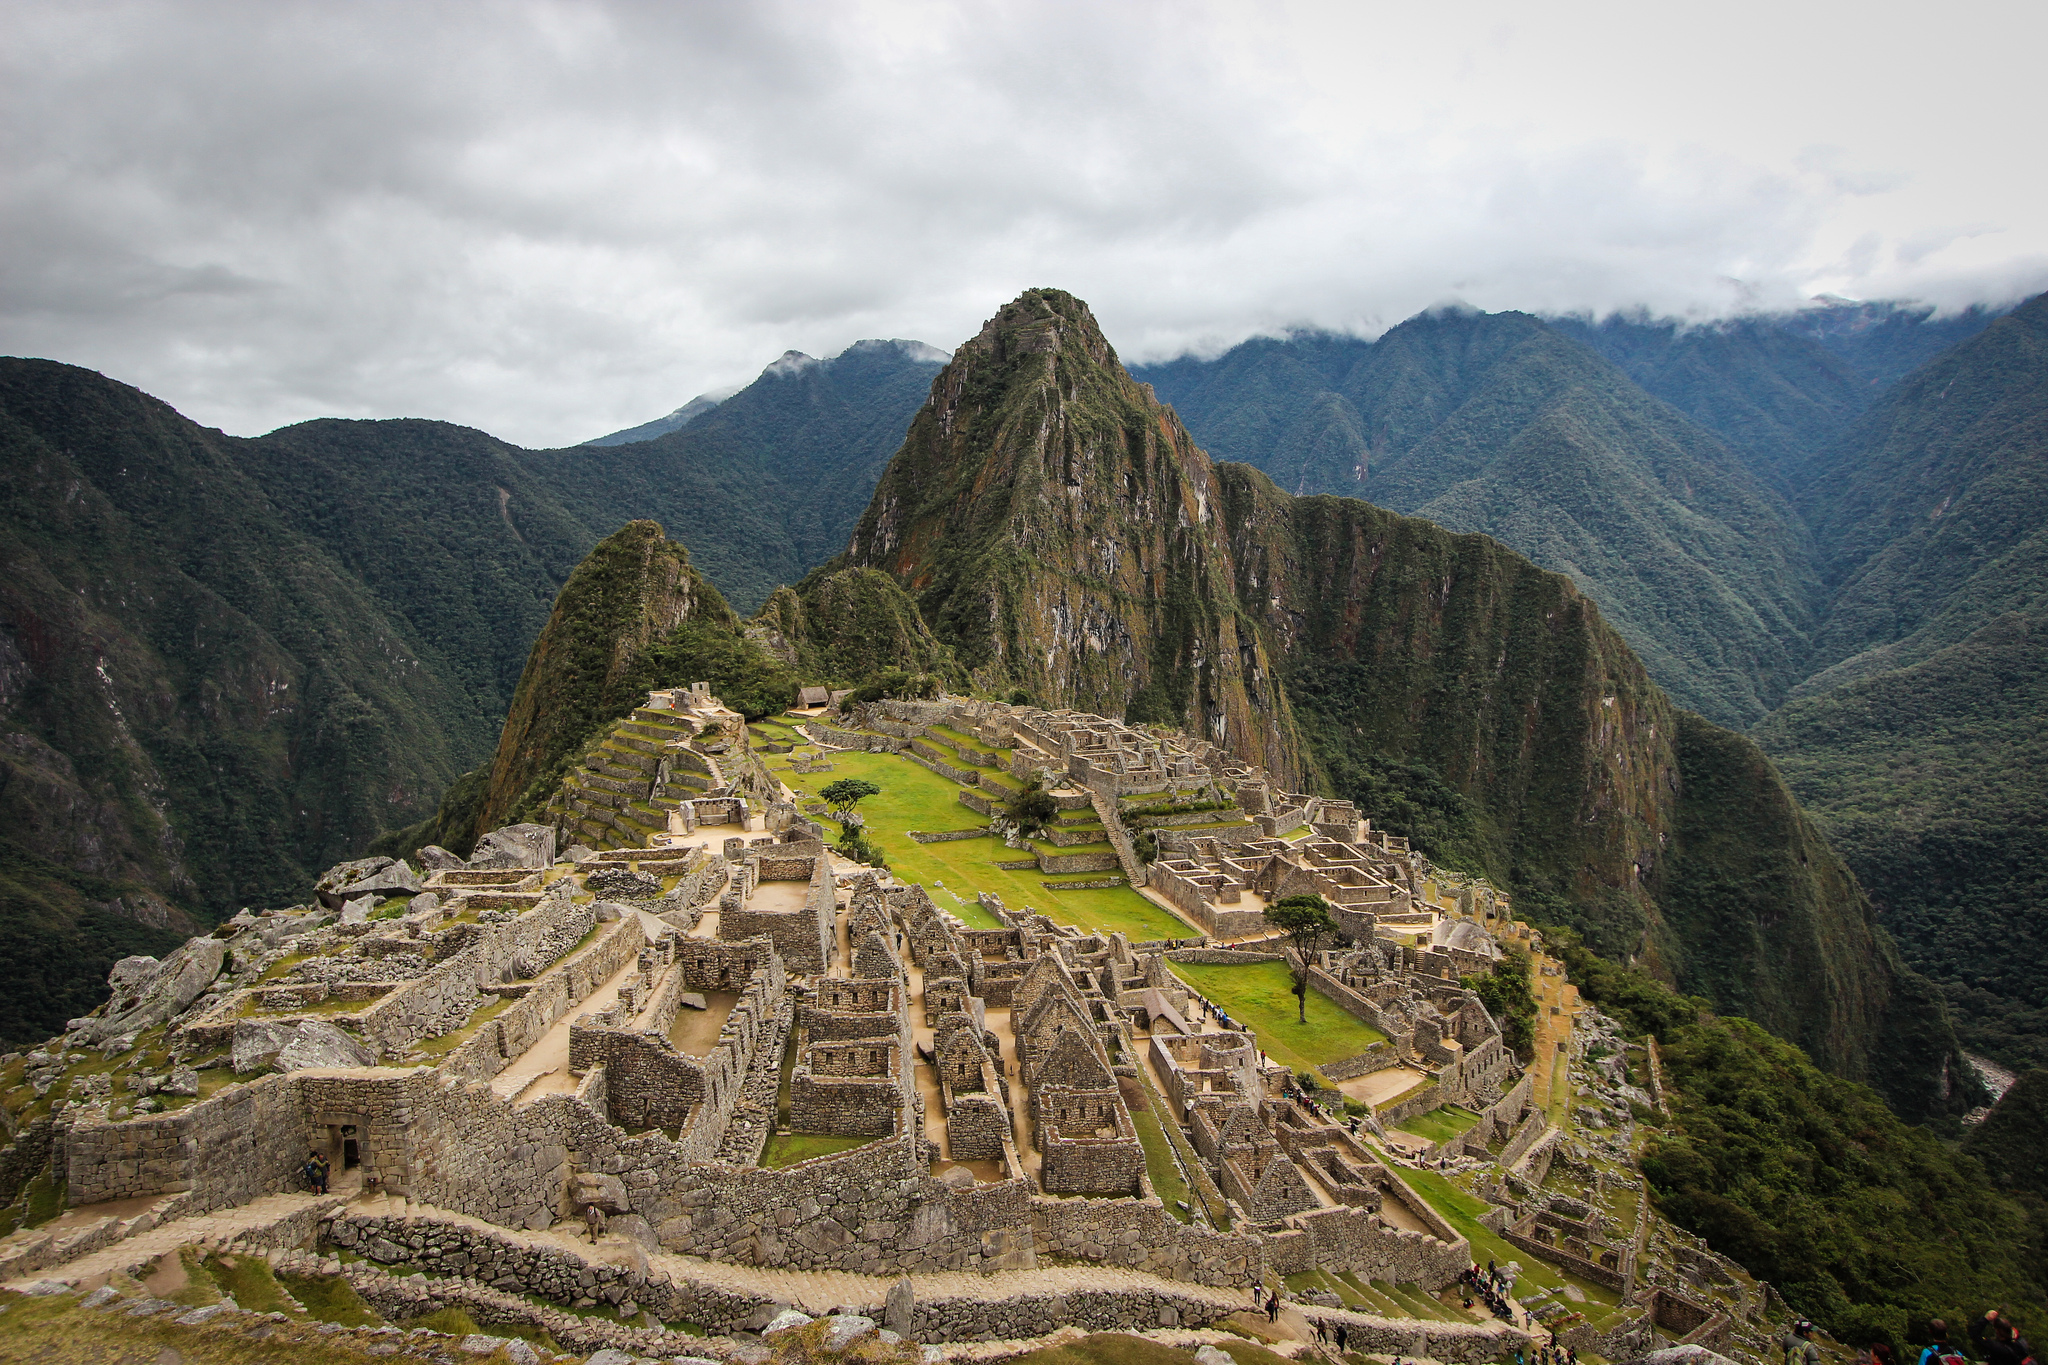 The Best Way To Experience Machu Picchu